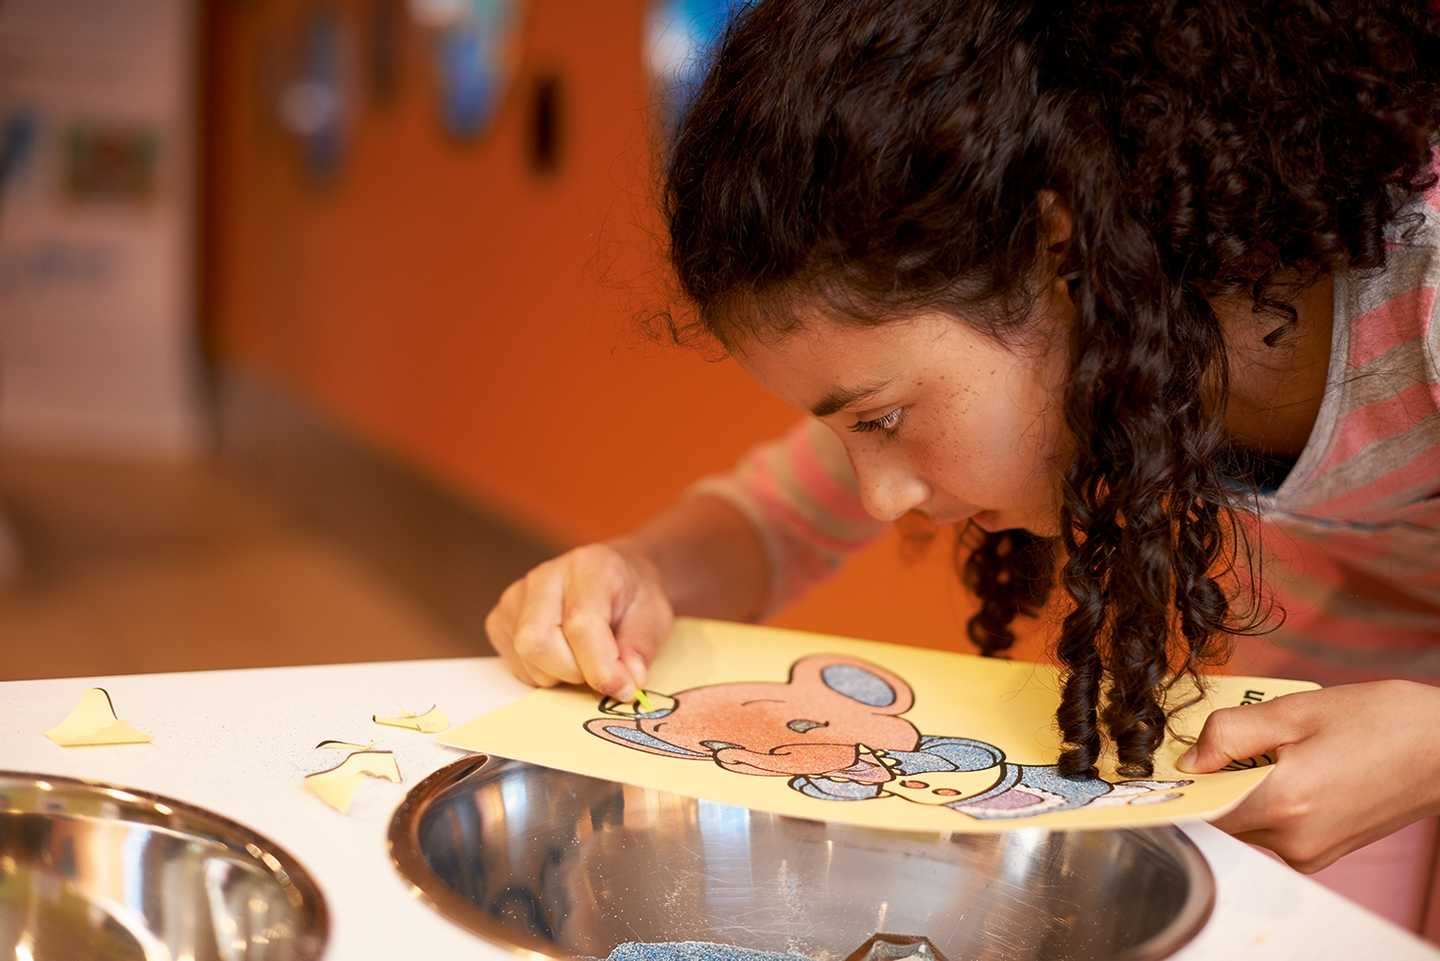 A young girl doing sand art